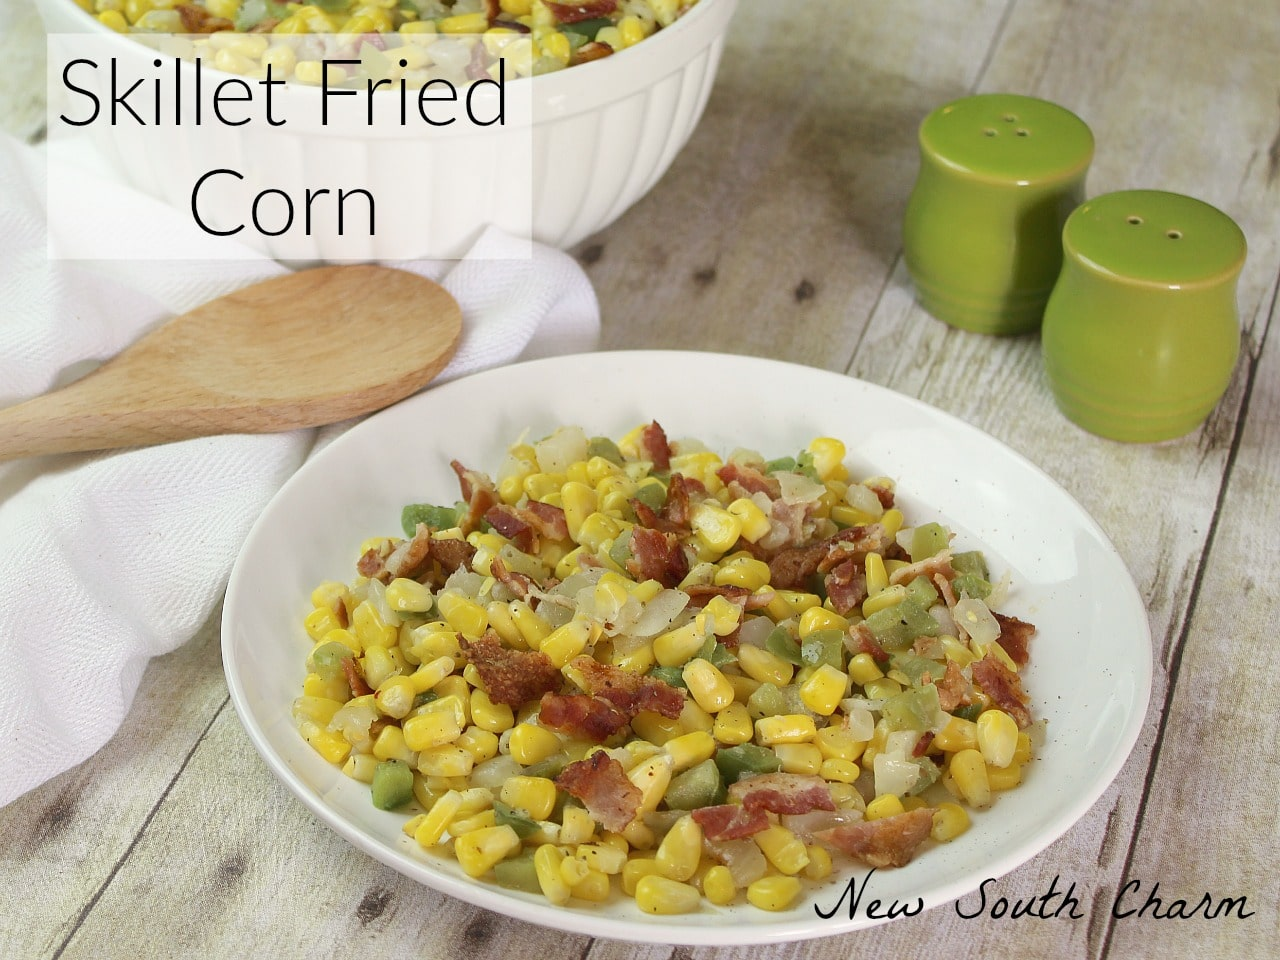 Skillet Fried Corn is easy to make and is packed with lots of great flavors like BACON! This is the perfect side for everything from chicken breasts to hamburgers.